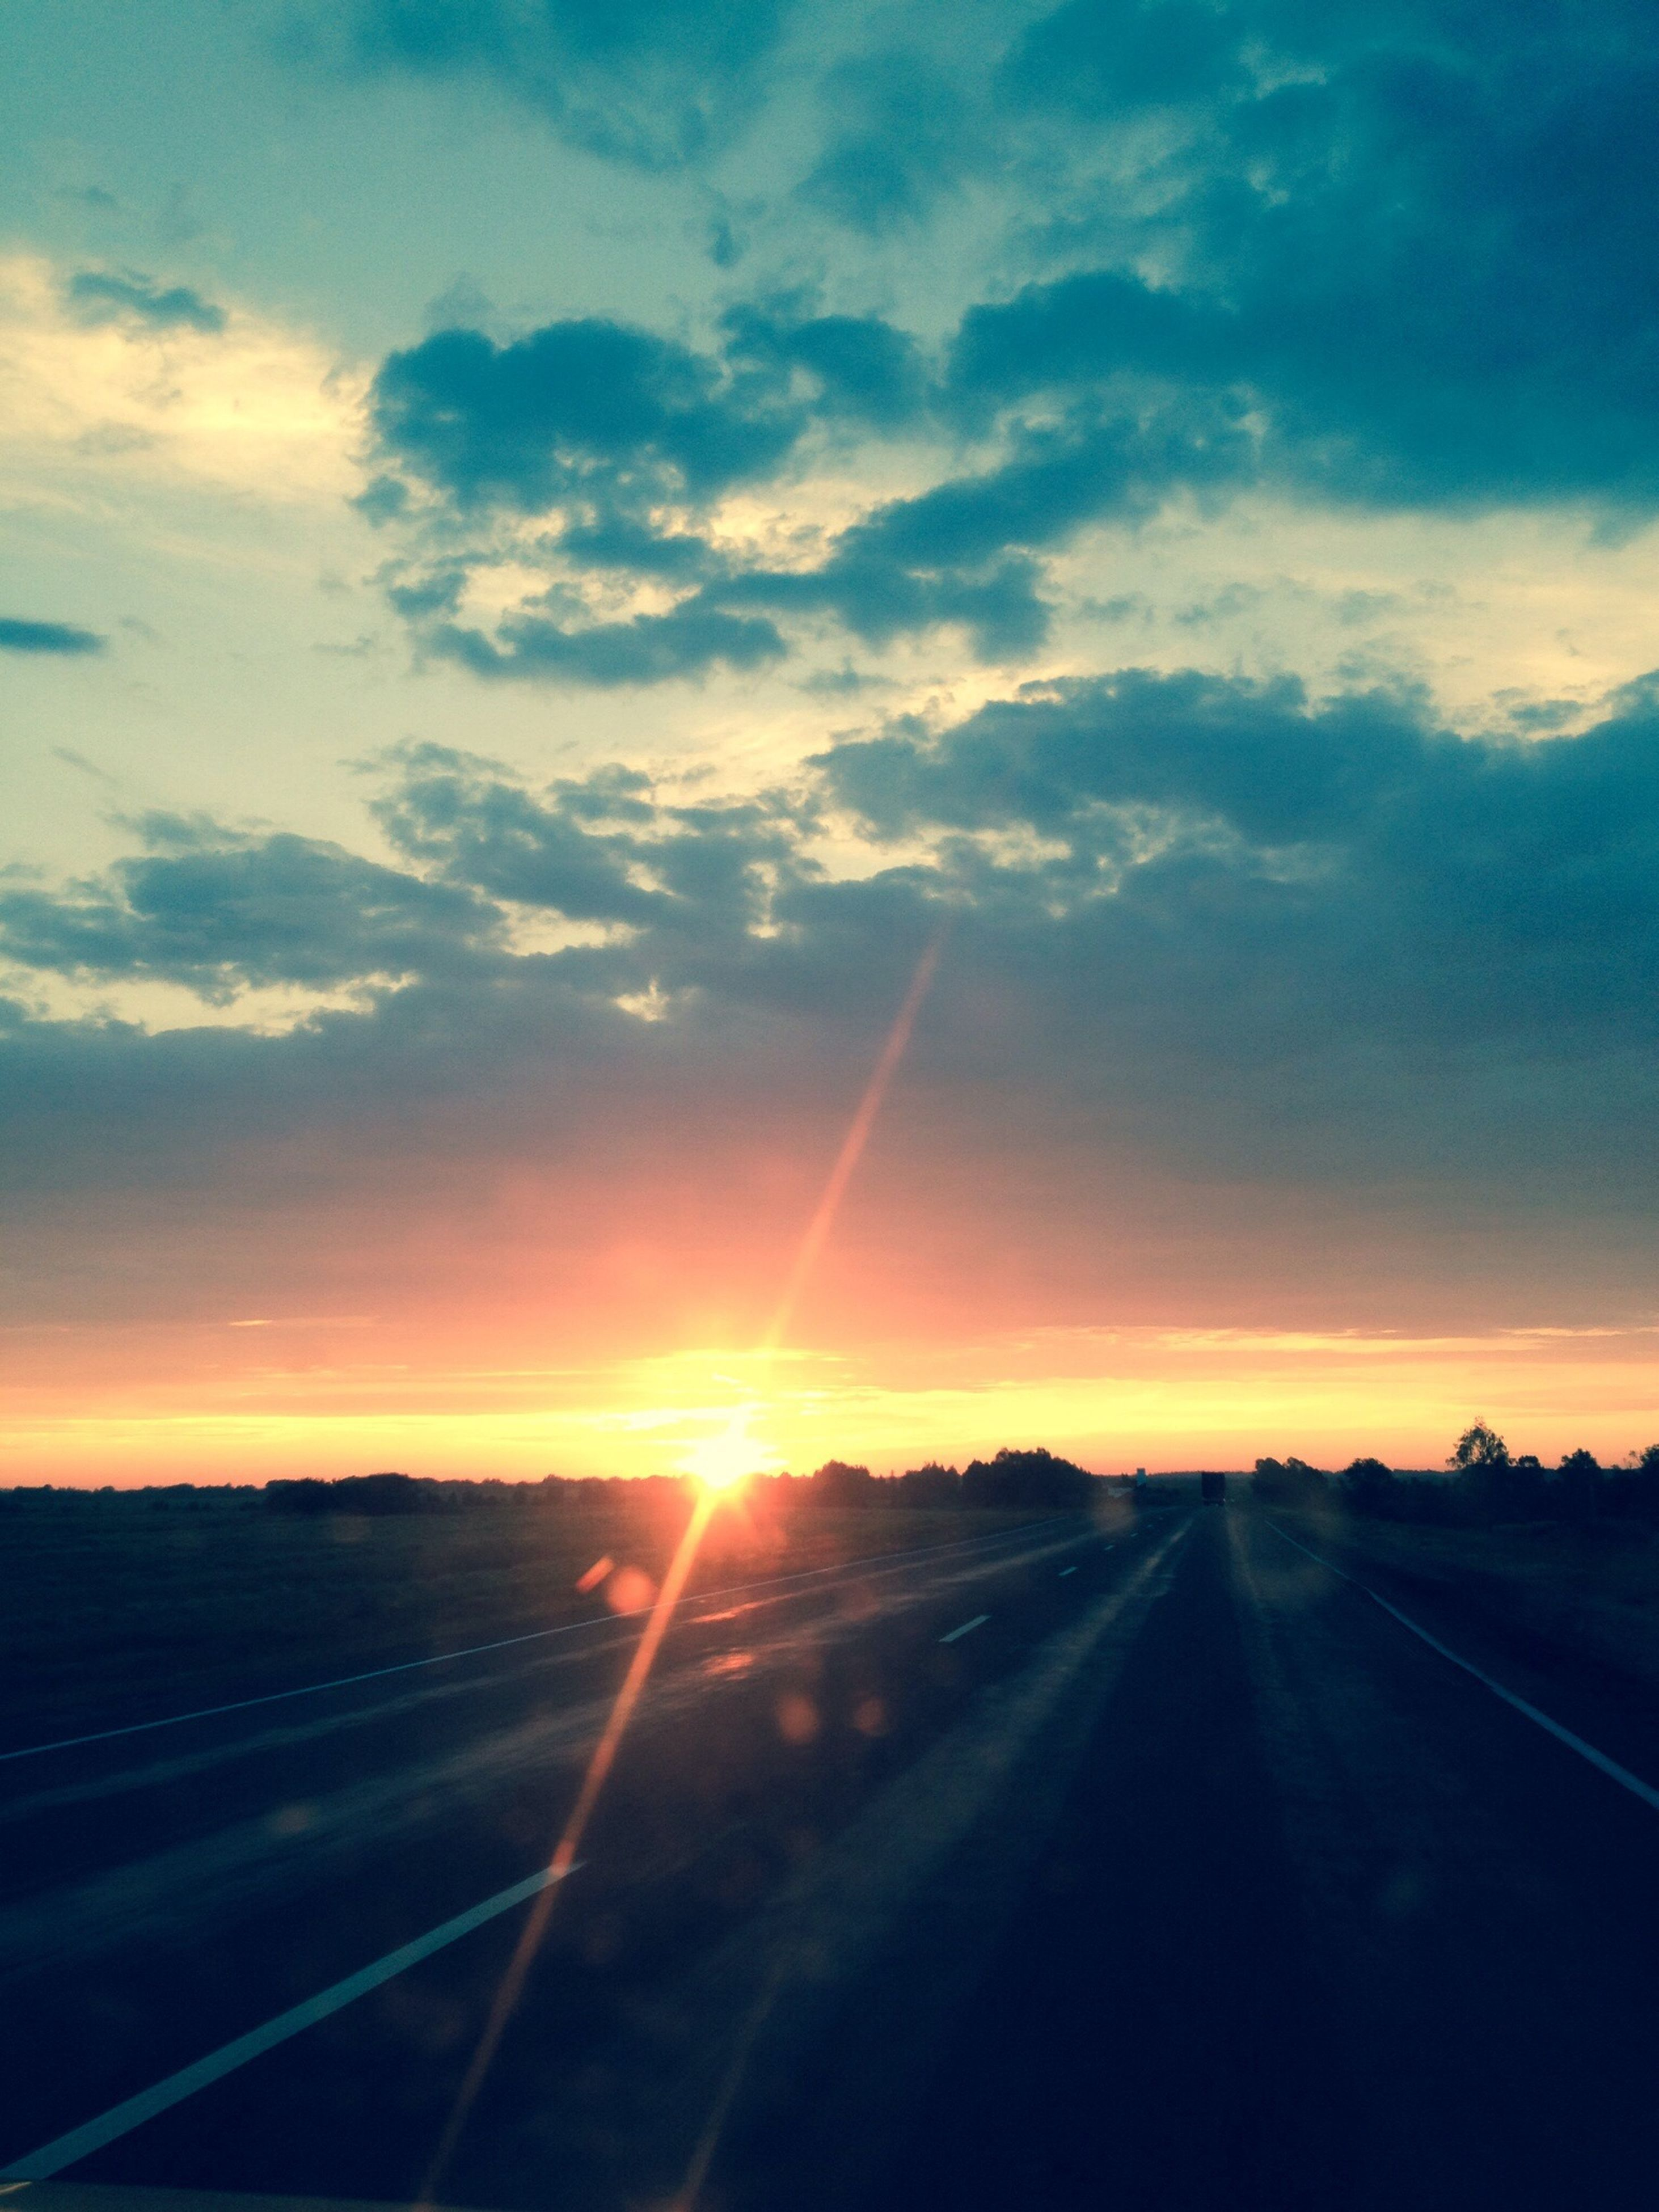 sunset, road, transportation, sky, the way forward, sun, landscape, tranquil scene, scenics, tranquility, diminishing perspective, cloud - sky, country road, beauty in nature, sunbeam, sunlight, nature, vanishing point, cloud, orange color